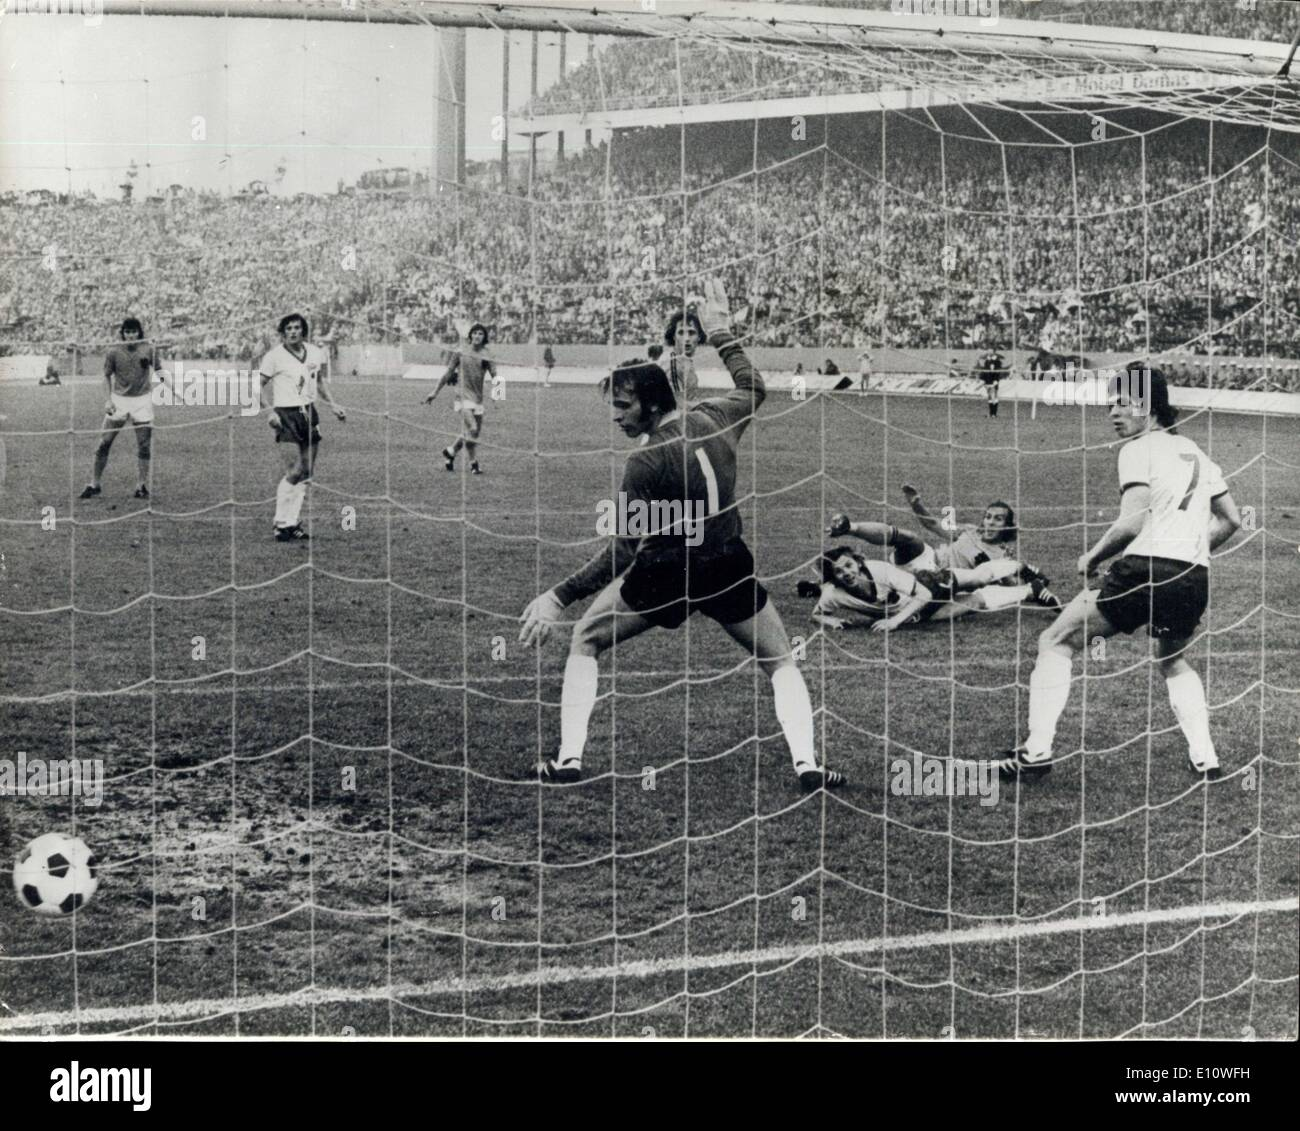 6d13ef5a05e Soccer World Cup 1974 Stock Photos   Soccer World Cup 1974 Stock ...